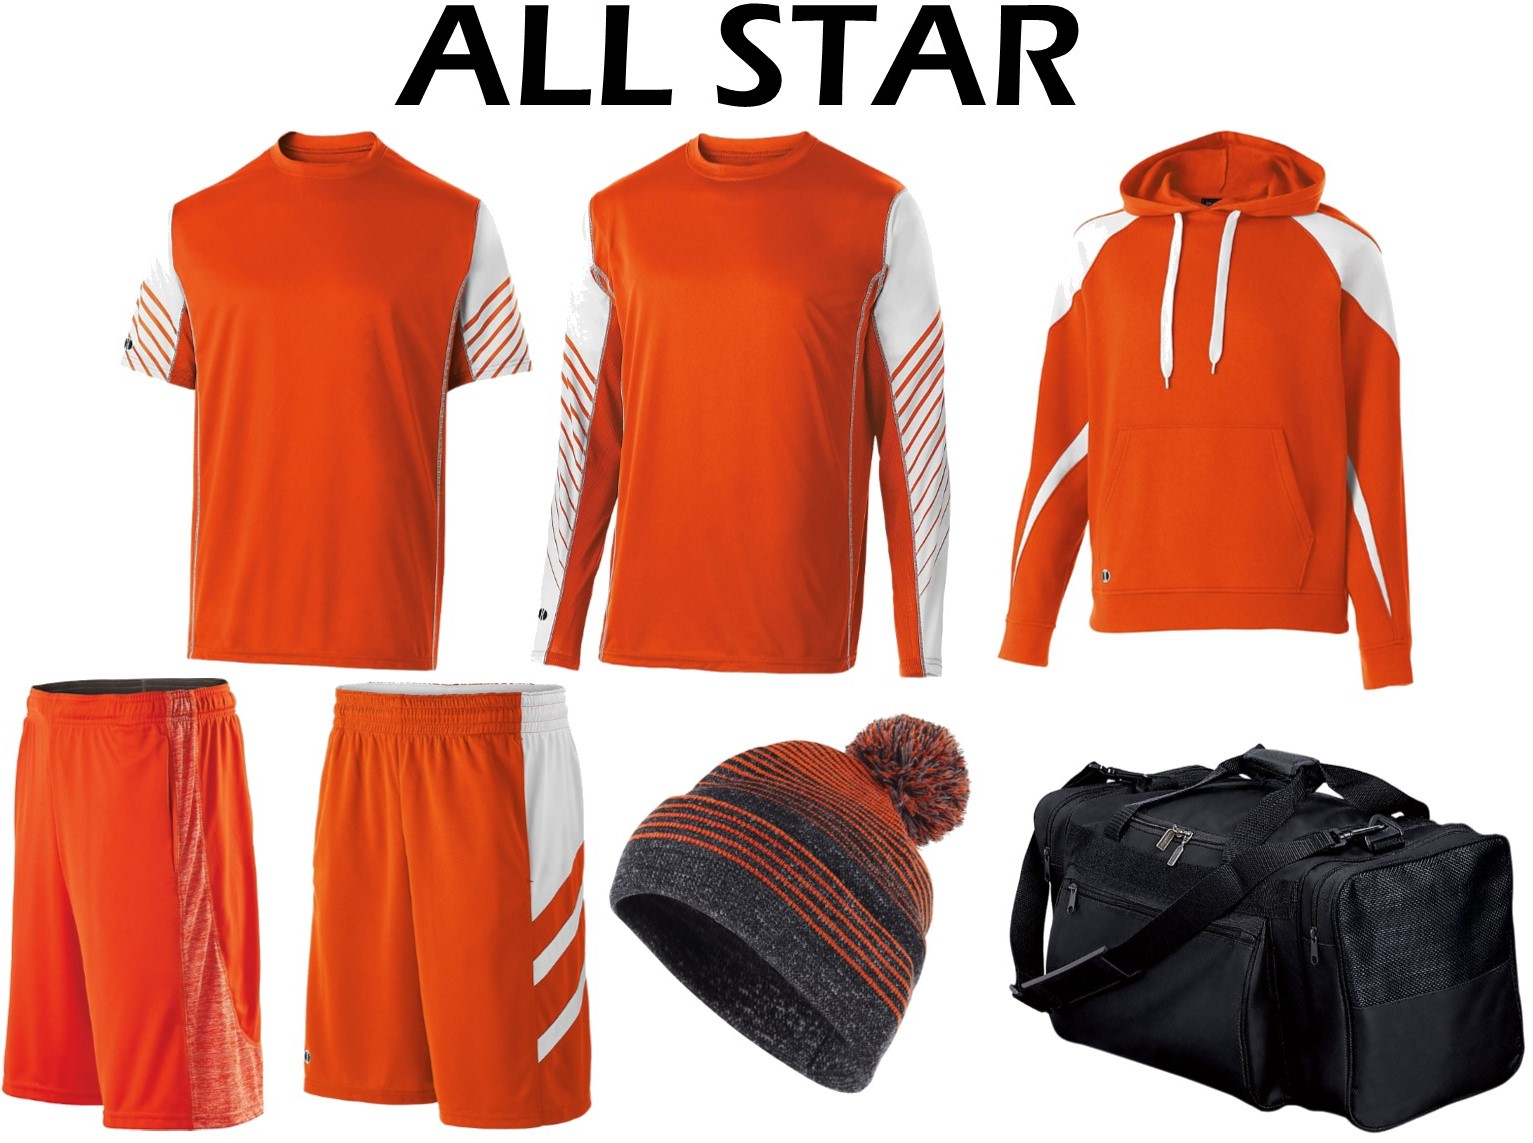 All Star Package - $195.00 - 1- Arc Dir-Fit T-Shirt1- Arc Dri-Fit Long Sleeve T-Shirt1- Prospect Hoodie1- Electron Dry Excel Shorts1- Helium Micro Mesh Shorts1- Constant Beanie1- Practice Duffel Bag